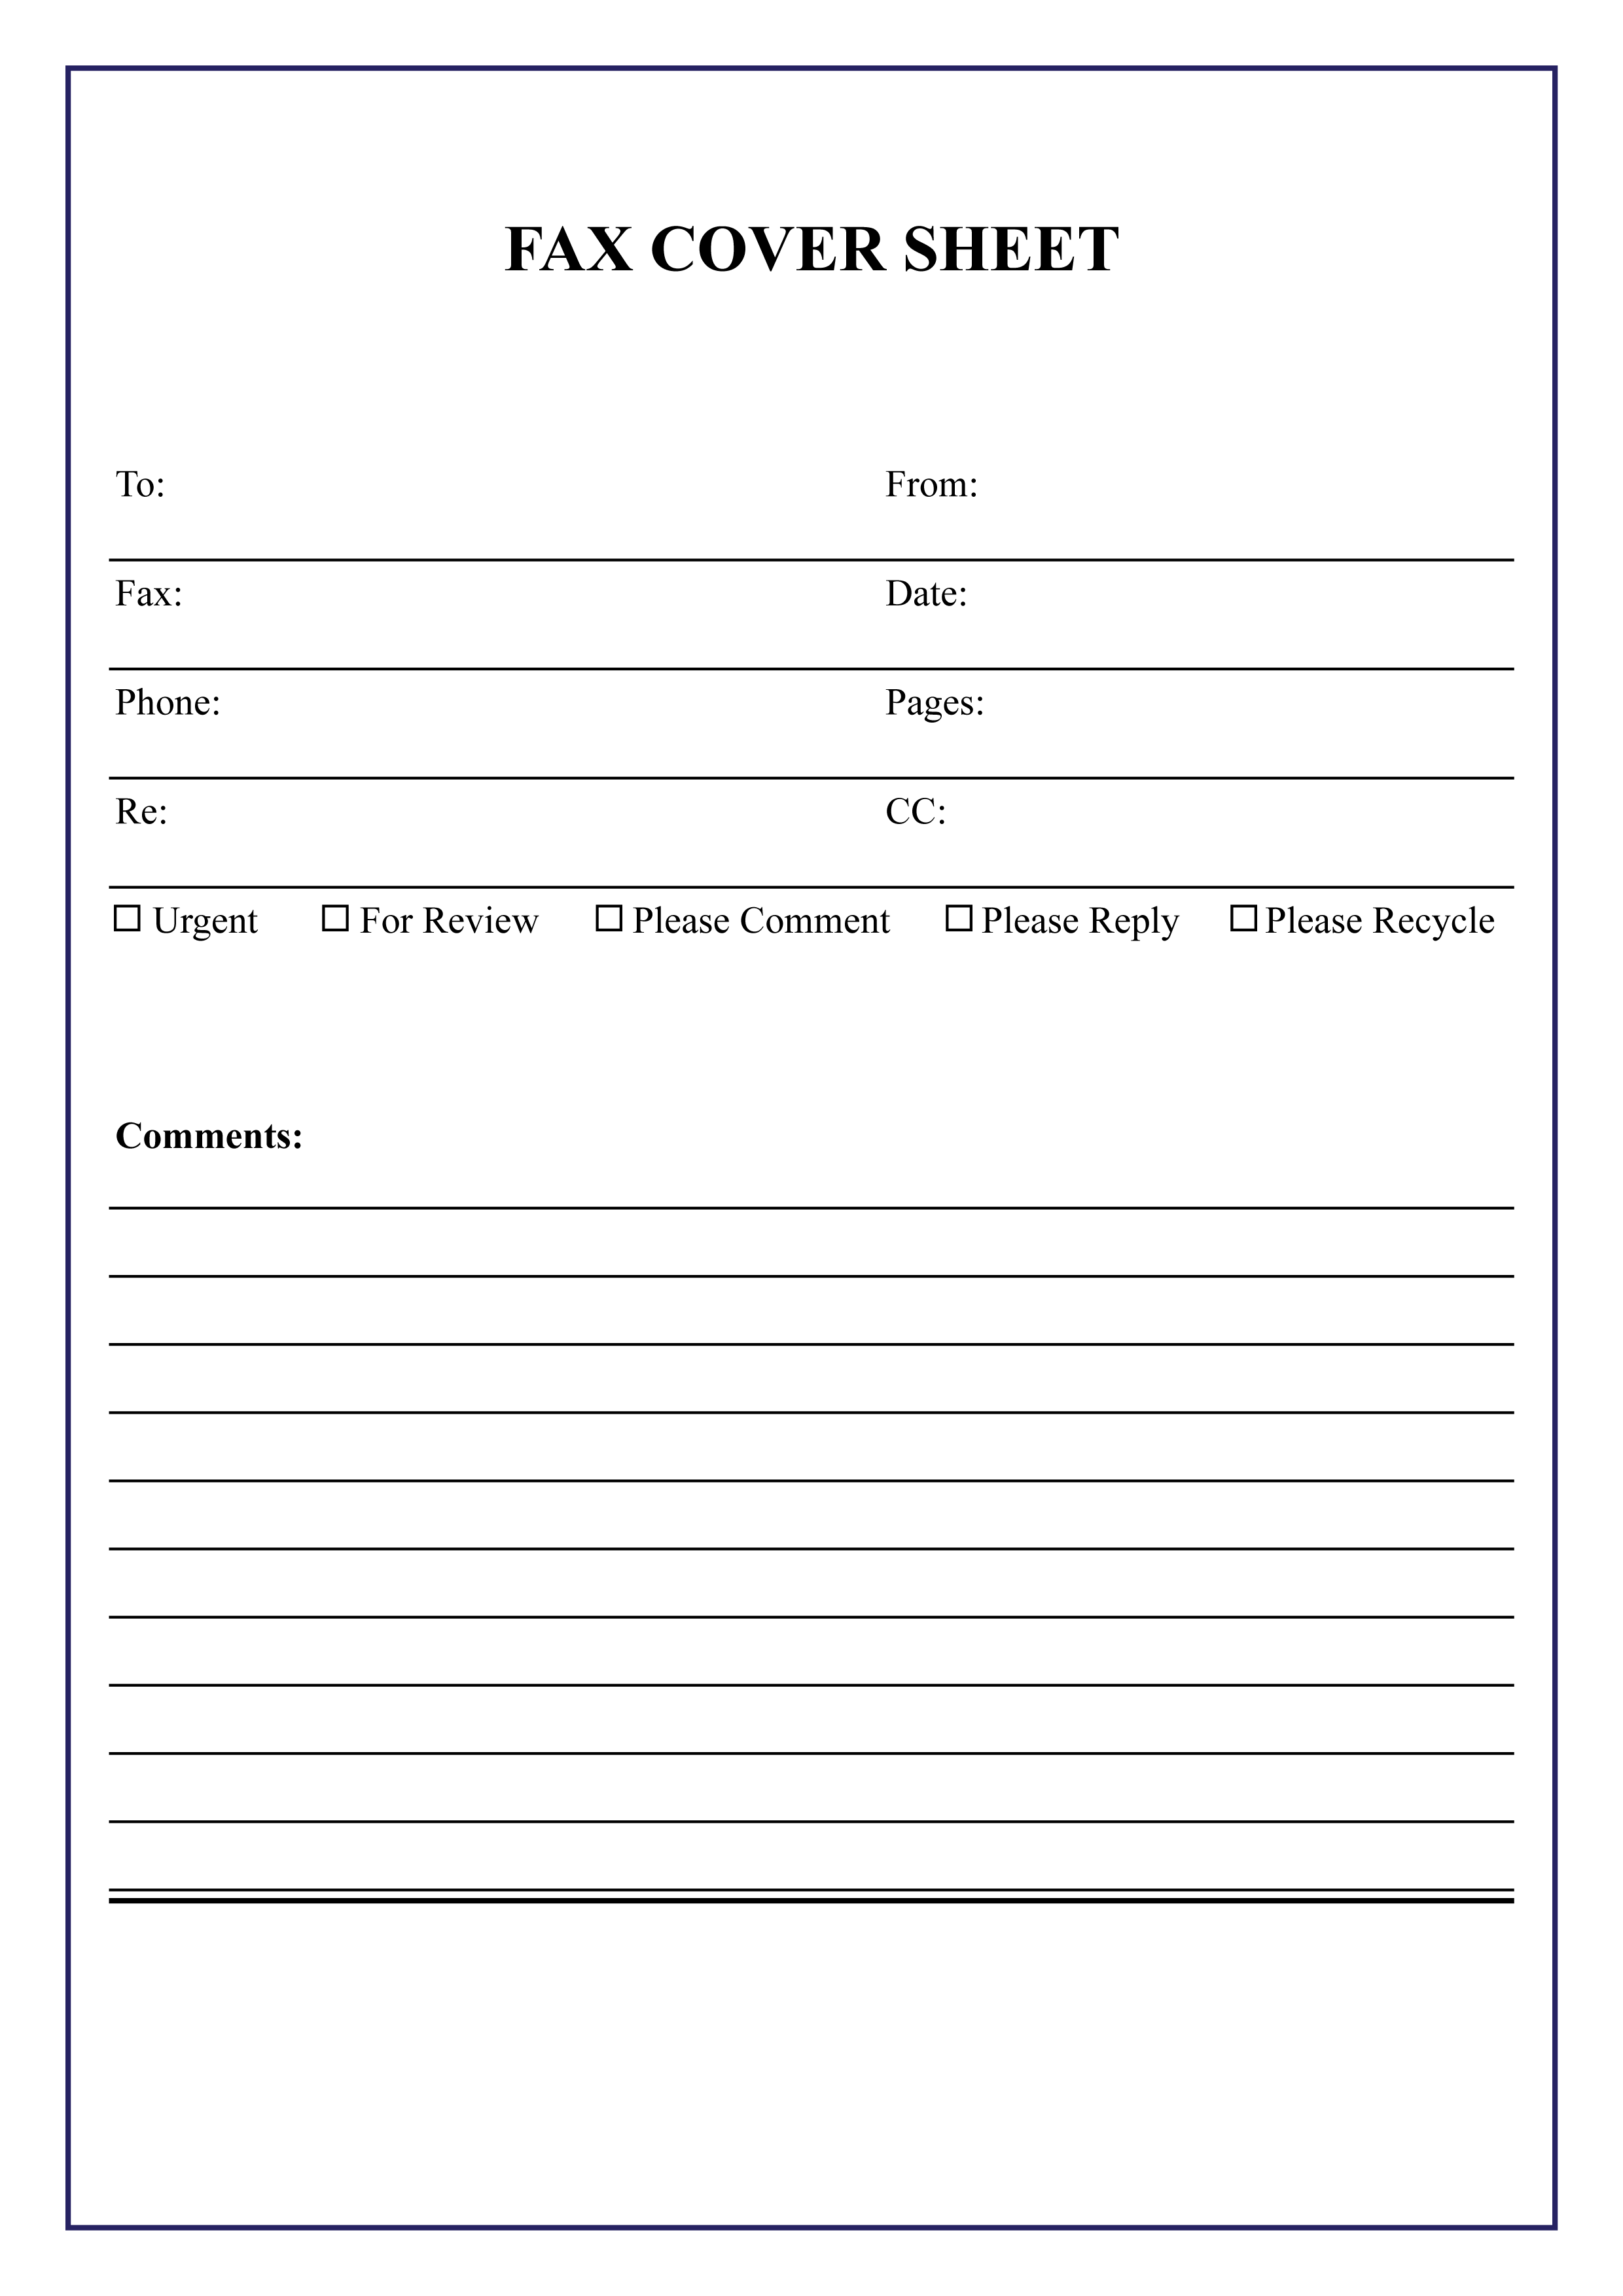 Fax Cover Sheet Excel